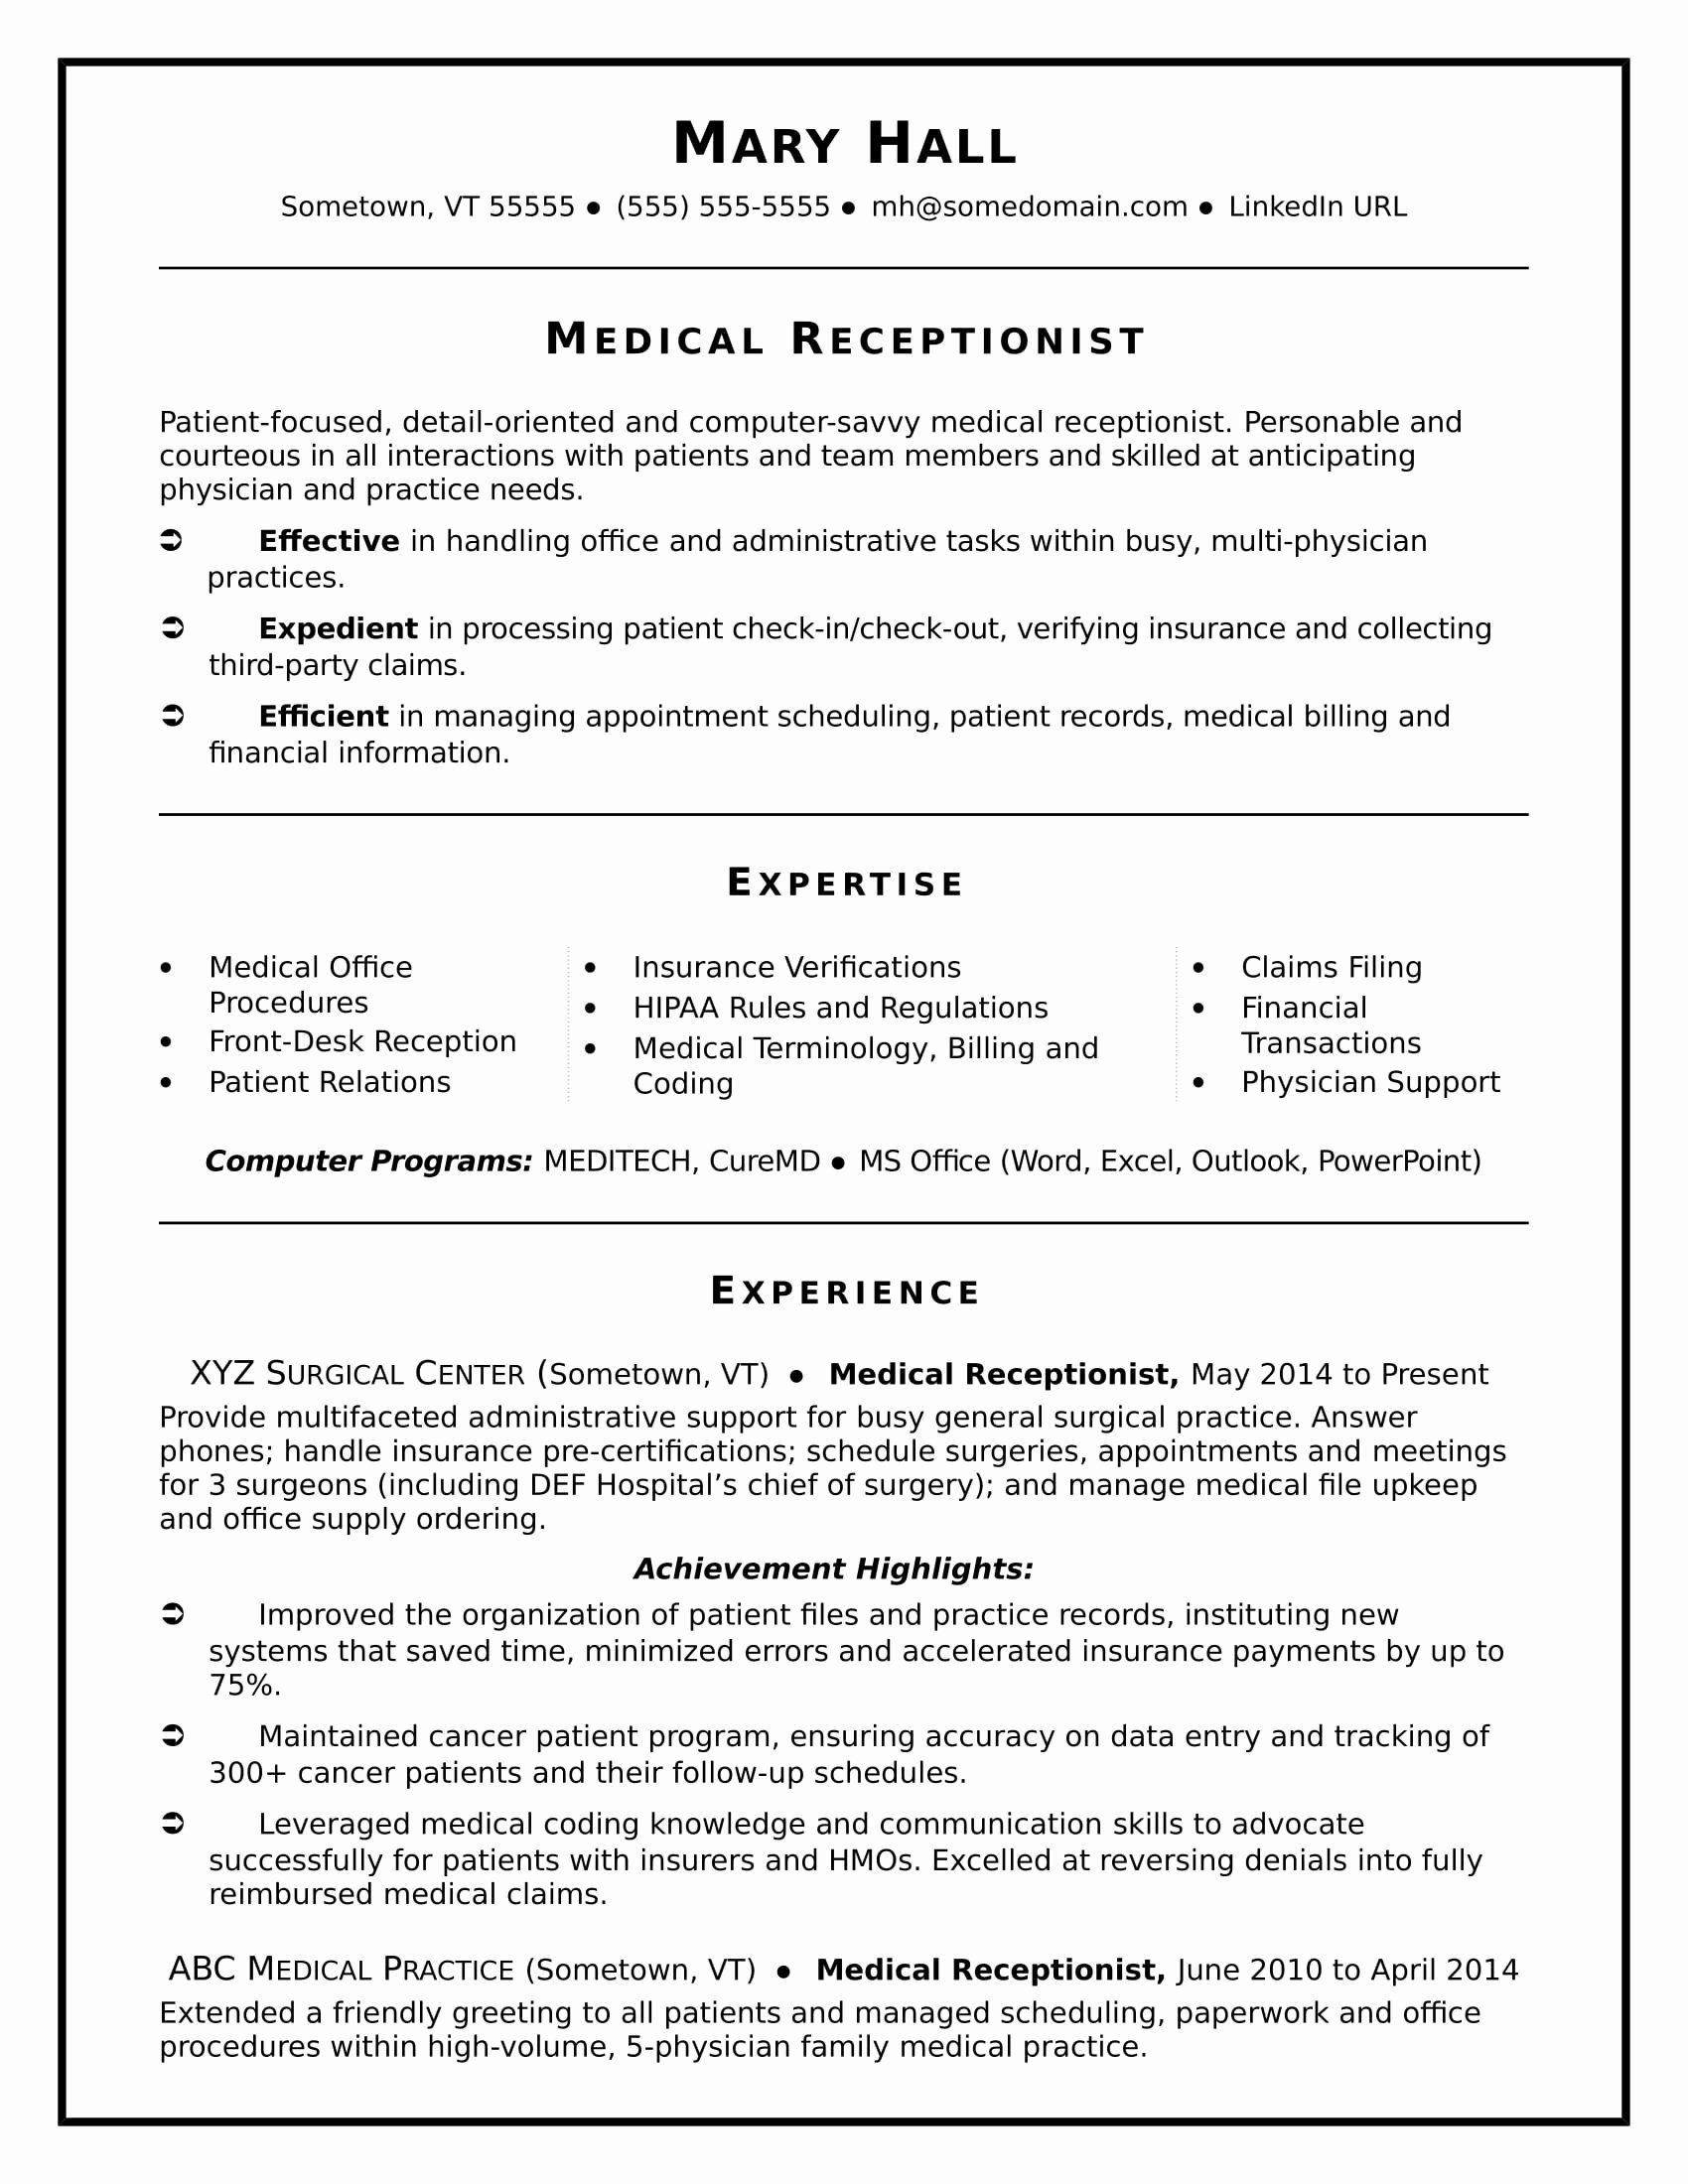 Resume Template Medical assistant Awesome Medical Receptionist Resume Sample